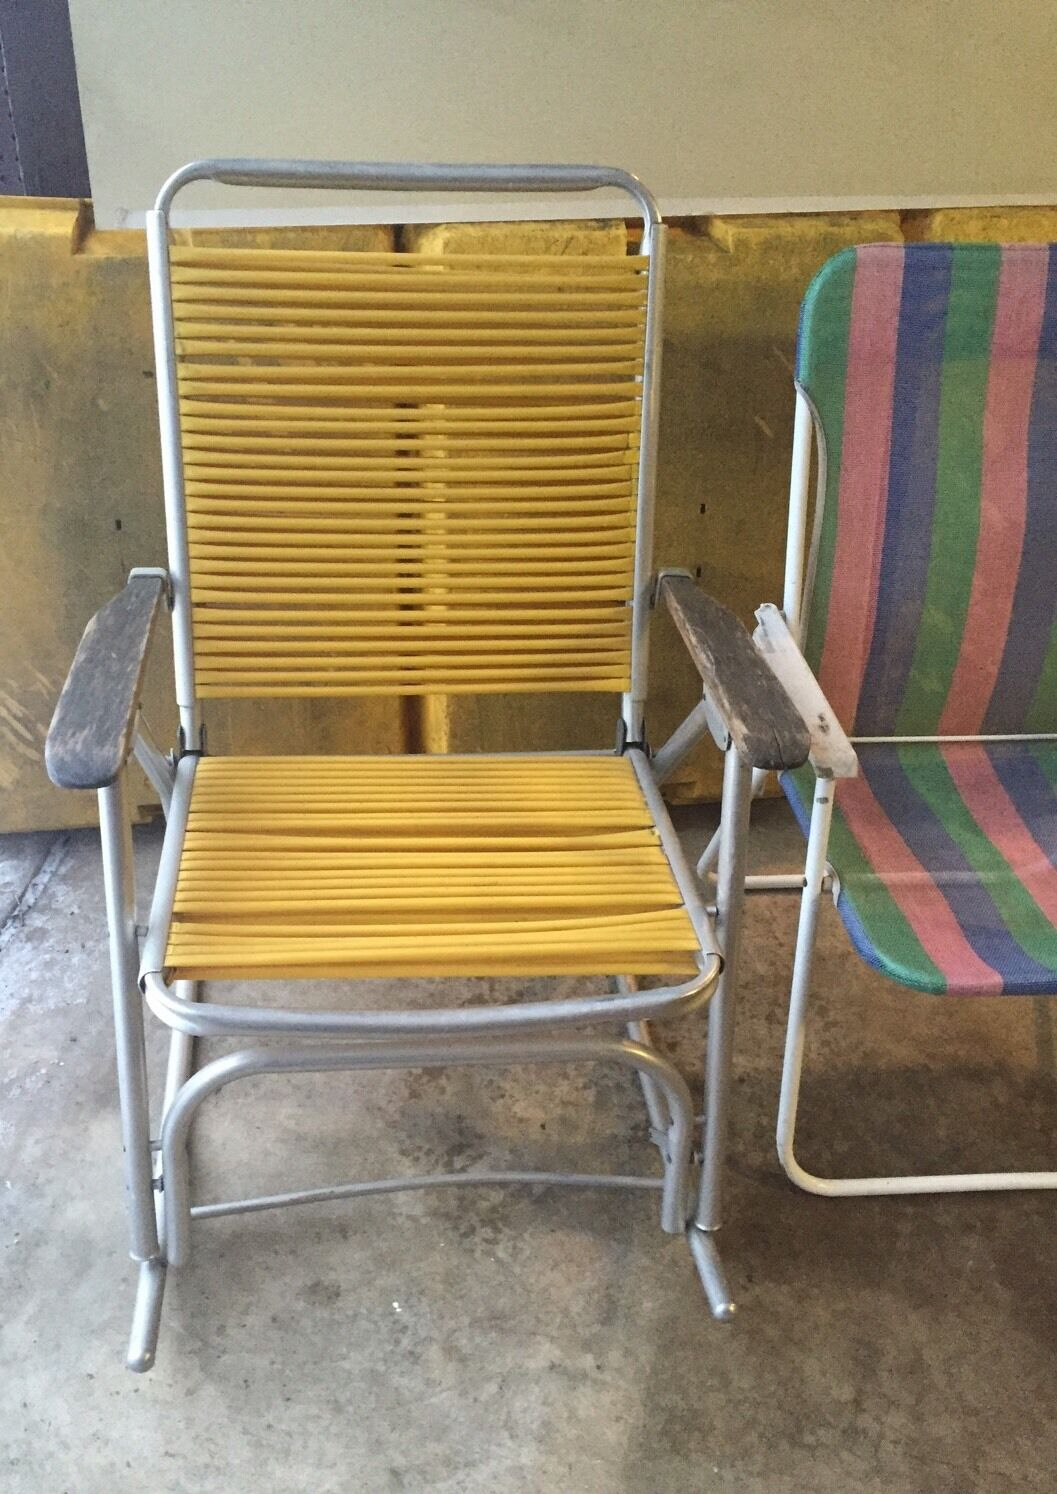 2 Lawn Chairs One is a Vintage rocking one